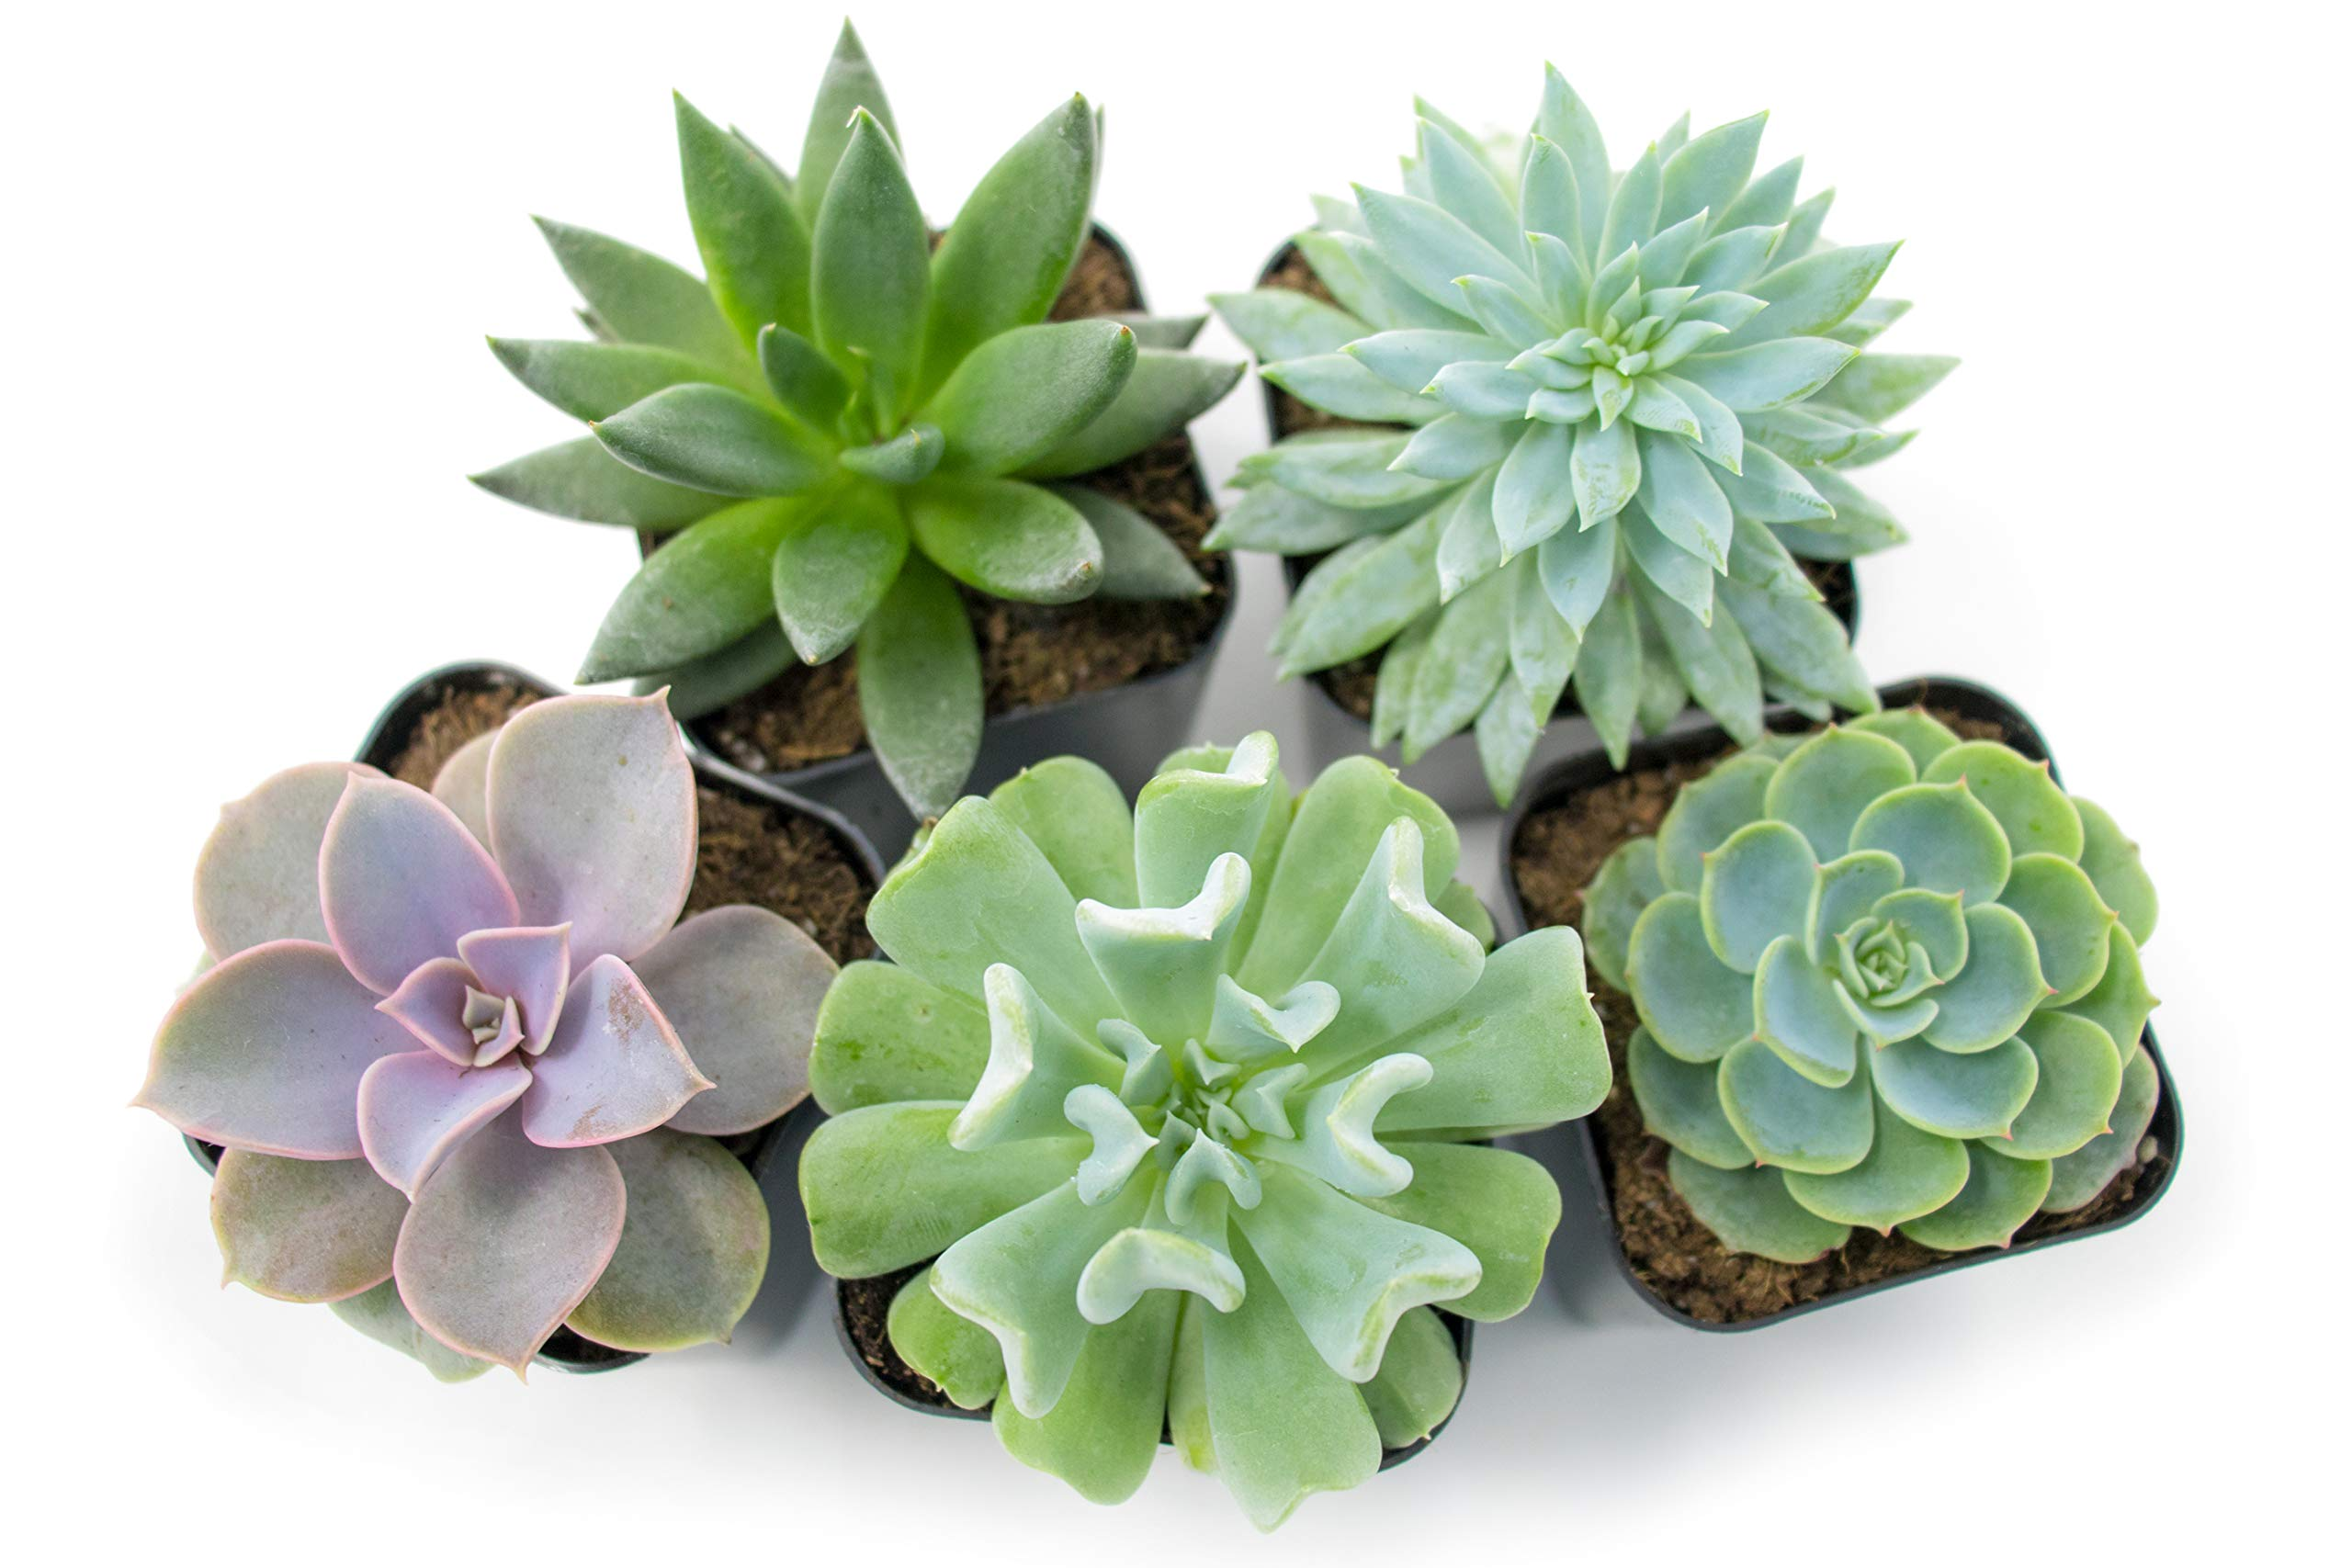 Succulent Plants (5 Pack), Fully Rooted in Planter Pots with Soil - Real Live Potted Succulents / Unique Indoor Cactus… 3 HAND SELECTED: Every pack of succulents we send is hand-picked. You will receive a unique collection of species that are FULLY ROOTED IN 2 INCH POTS, which will be similar to the product photos (see photo 2 for scale). Note that we rotate our nursery stock often, so the exact species we send changes every week. THE EASIEST HOUSE PLANTS: More appealing than artificial plastic or fake faux plants, and care is a cinch. If you think you can't keep houseplants alive, you're wrong; our succulents don't require fertilizer and can be planted in a decorative pot of your choice within seconds. DIY HOME DECOR: The possibilities are only limited by your imagination; display them in a plant holder, a wall mount, a geometric glass vase, or even in a live wreath. Because of their amazingly low care requirements, they can even make the perfect desk centerpiece for your office.